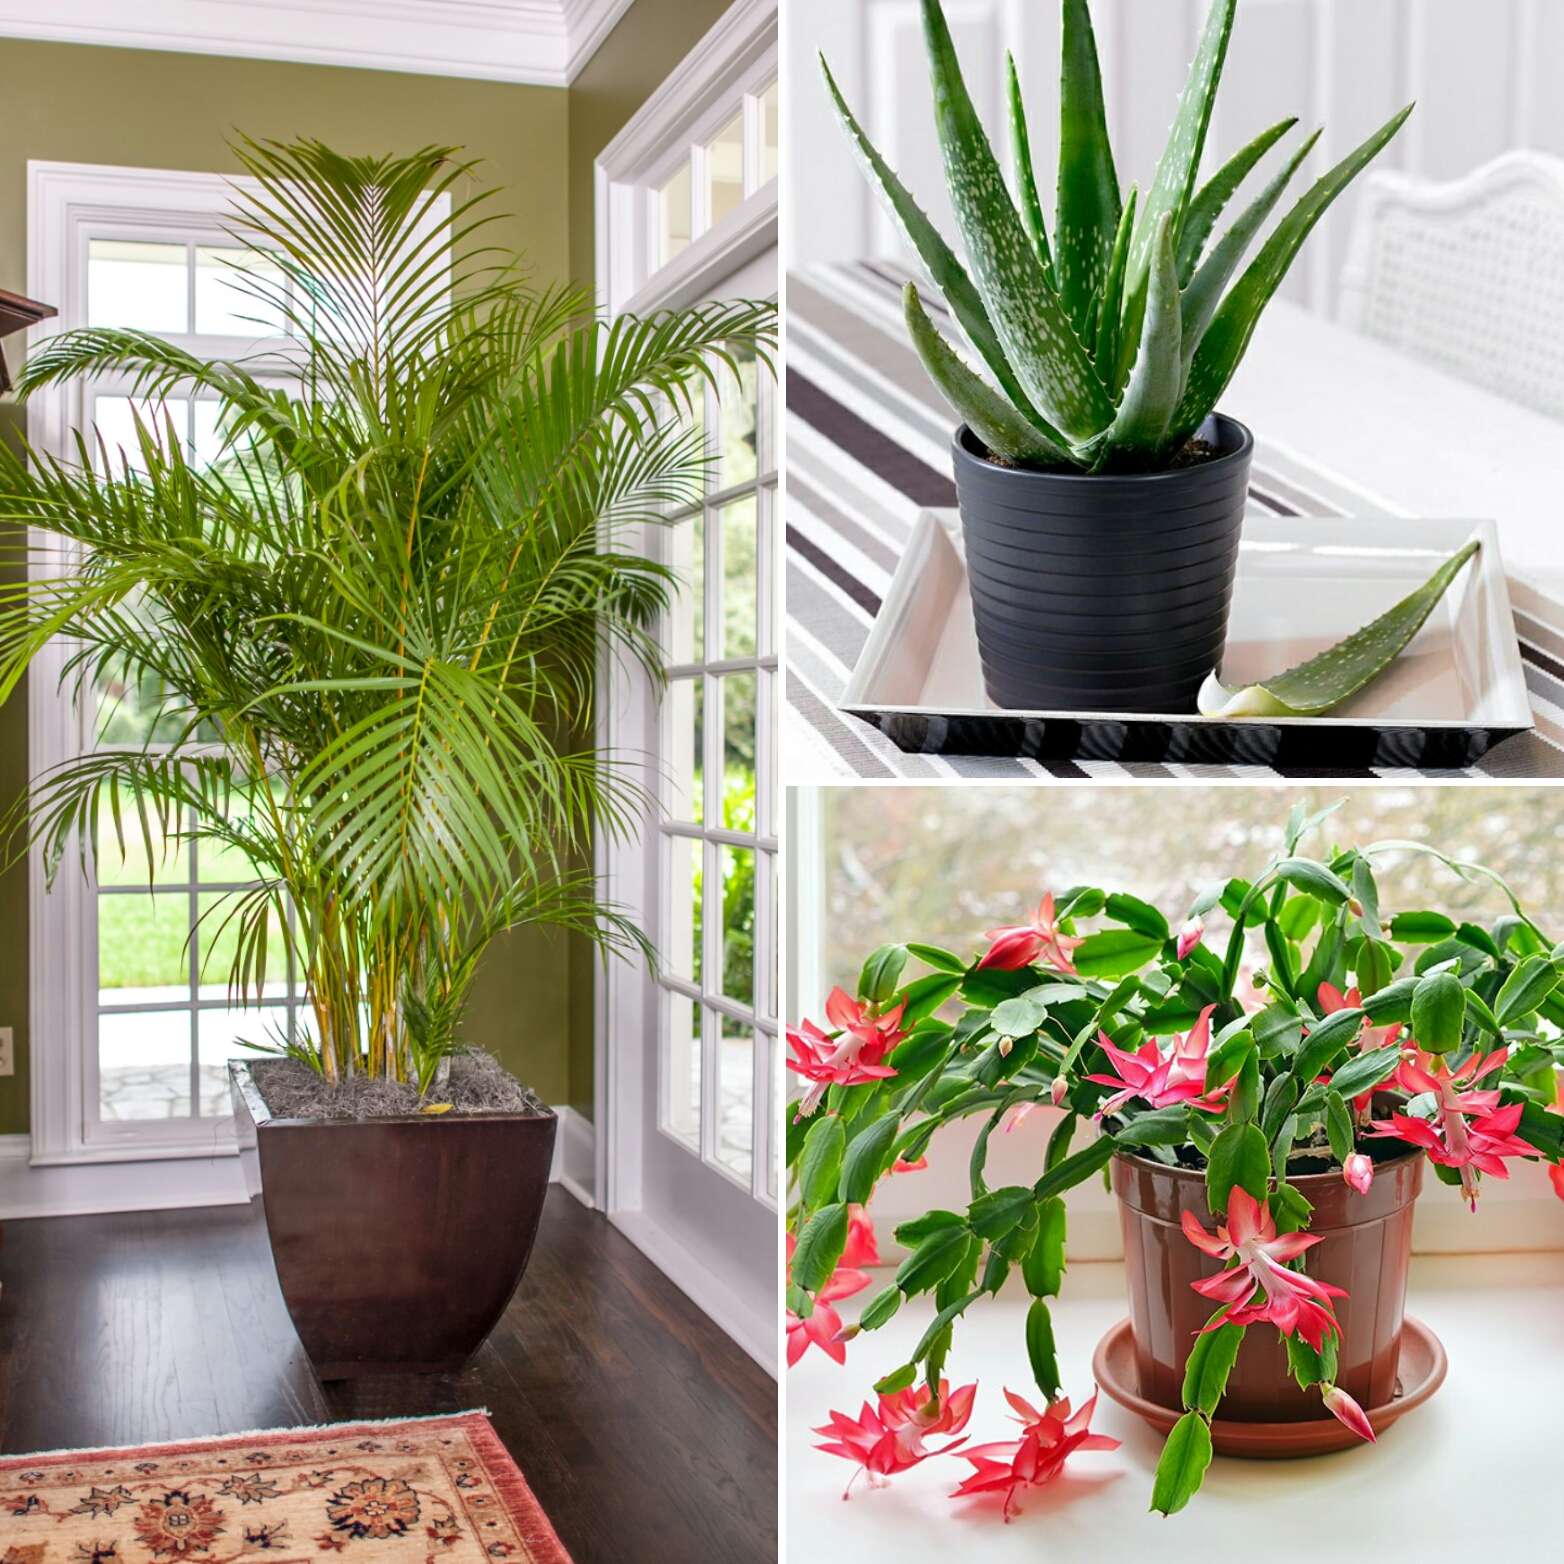 Simple Home Decor: Healthy Home: Simple Home Décor Solutions With Health Benefits